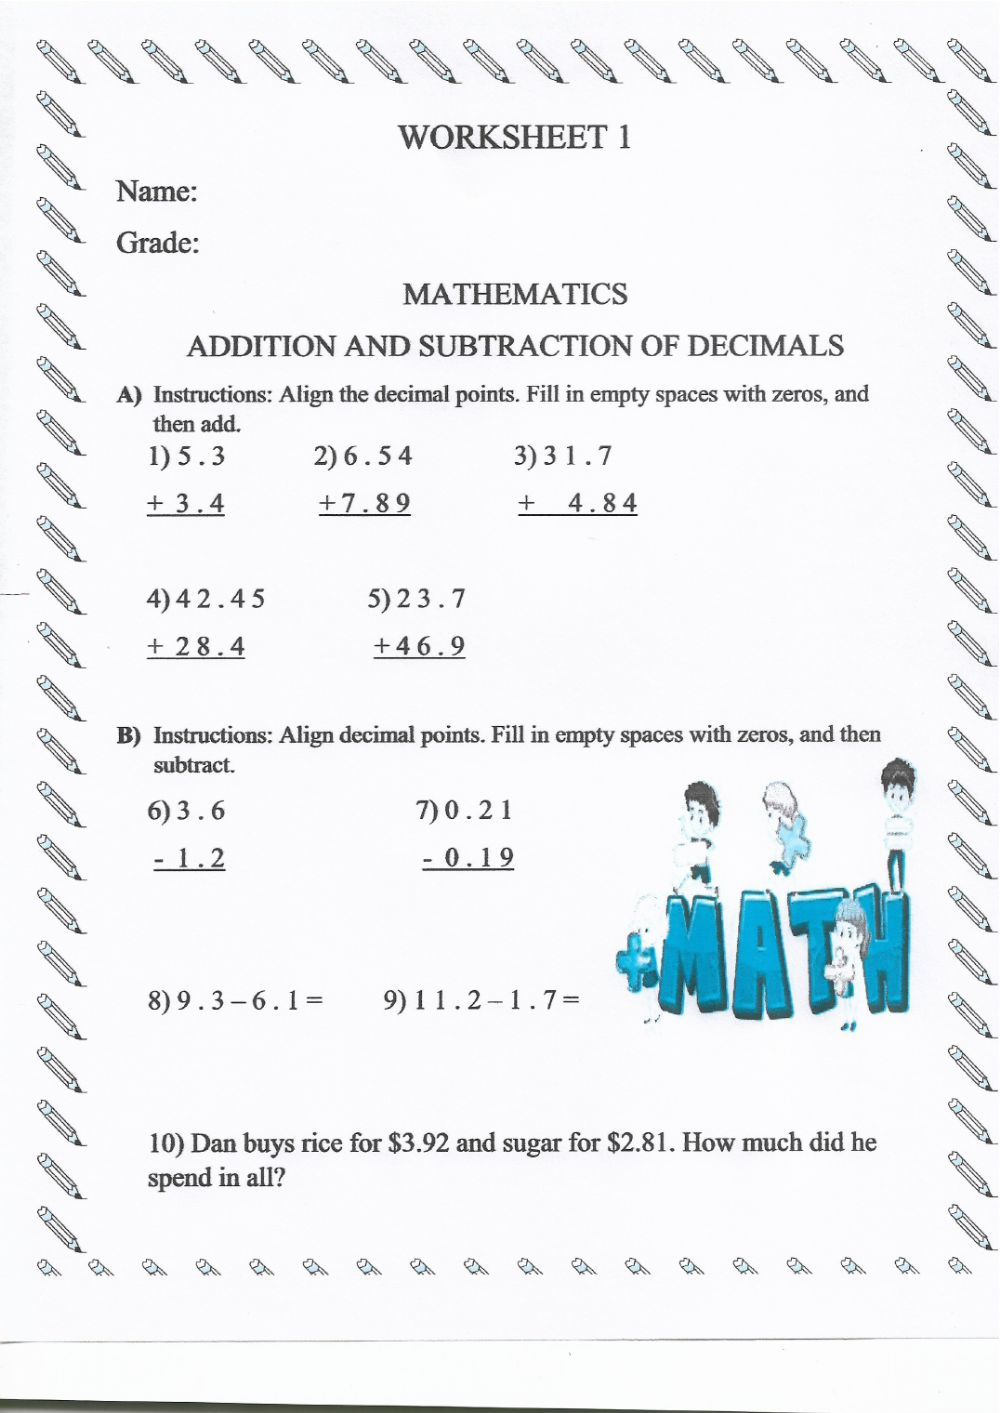 medium resolution of Adding \u0026 Subtracting Decimals worksheet